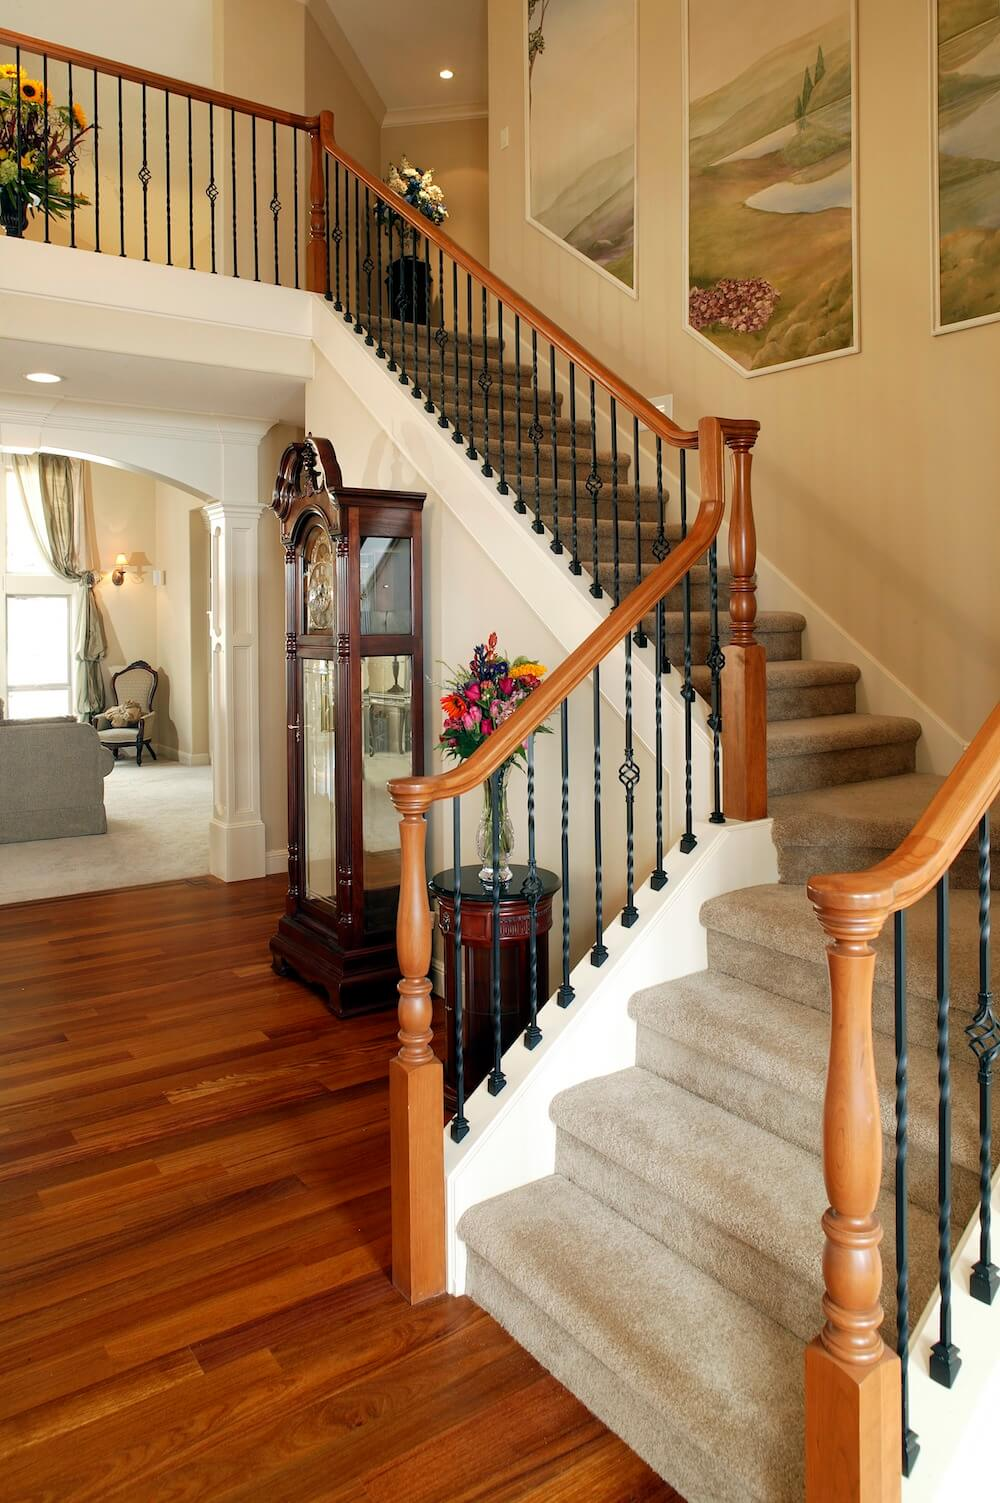 75 Most Popular Staircase Design Ideas For 2019: Cost To Build Railings & Handrails